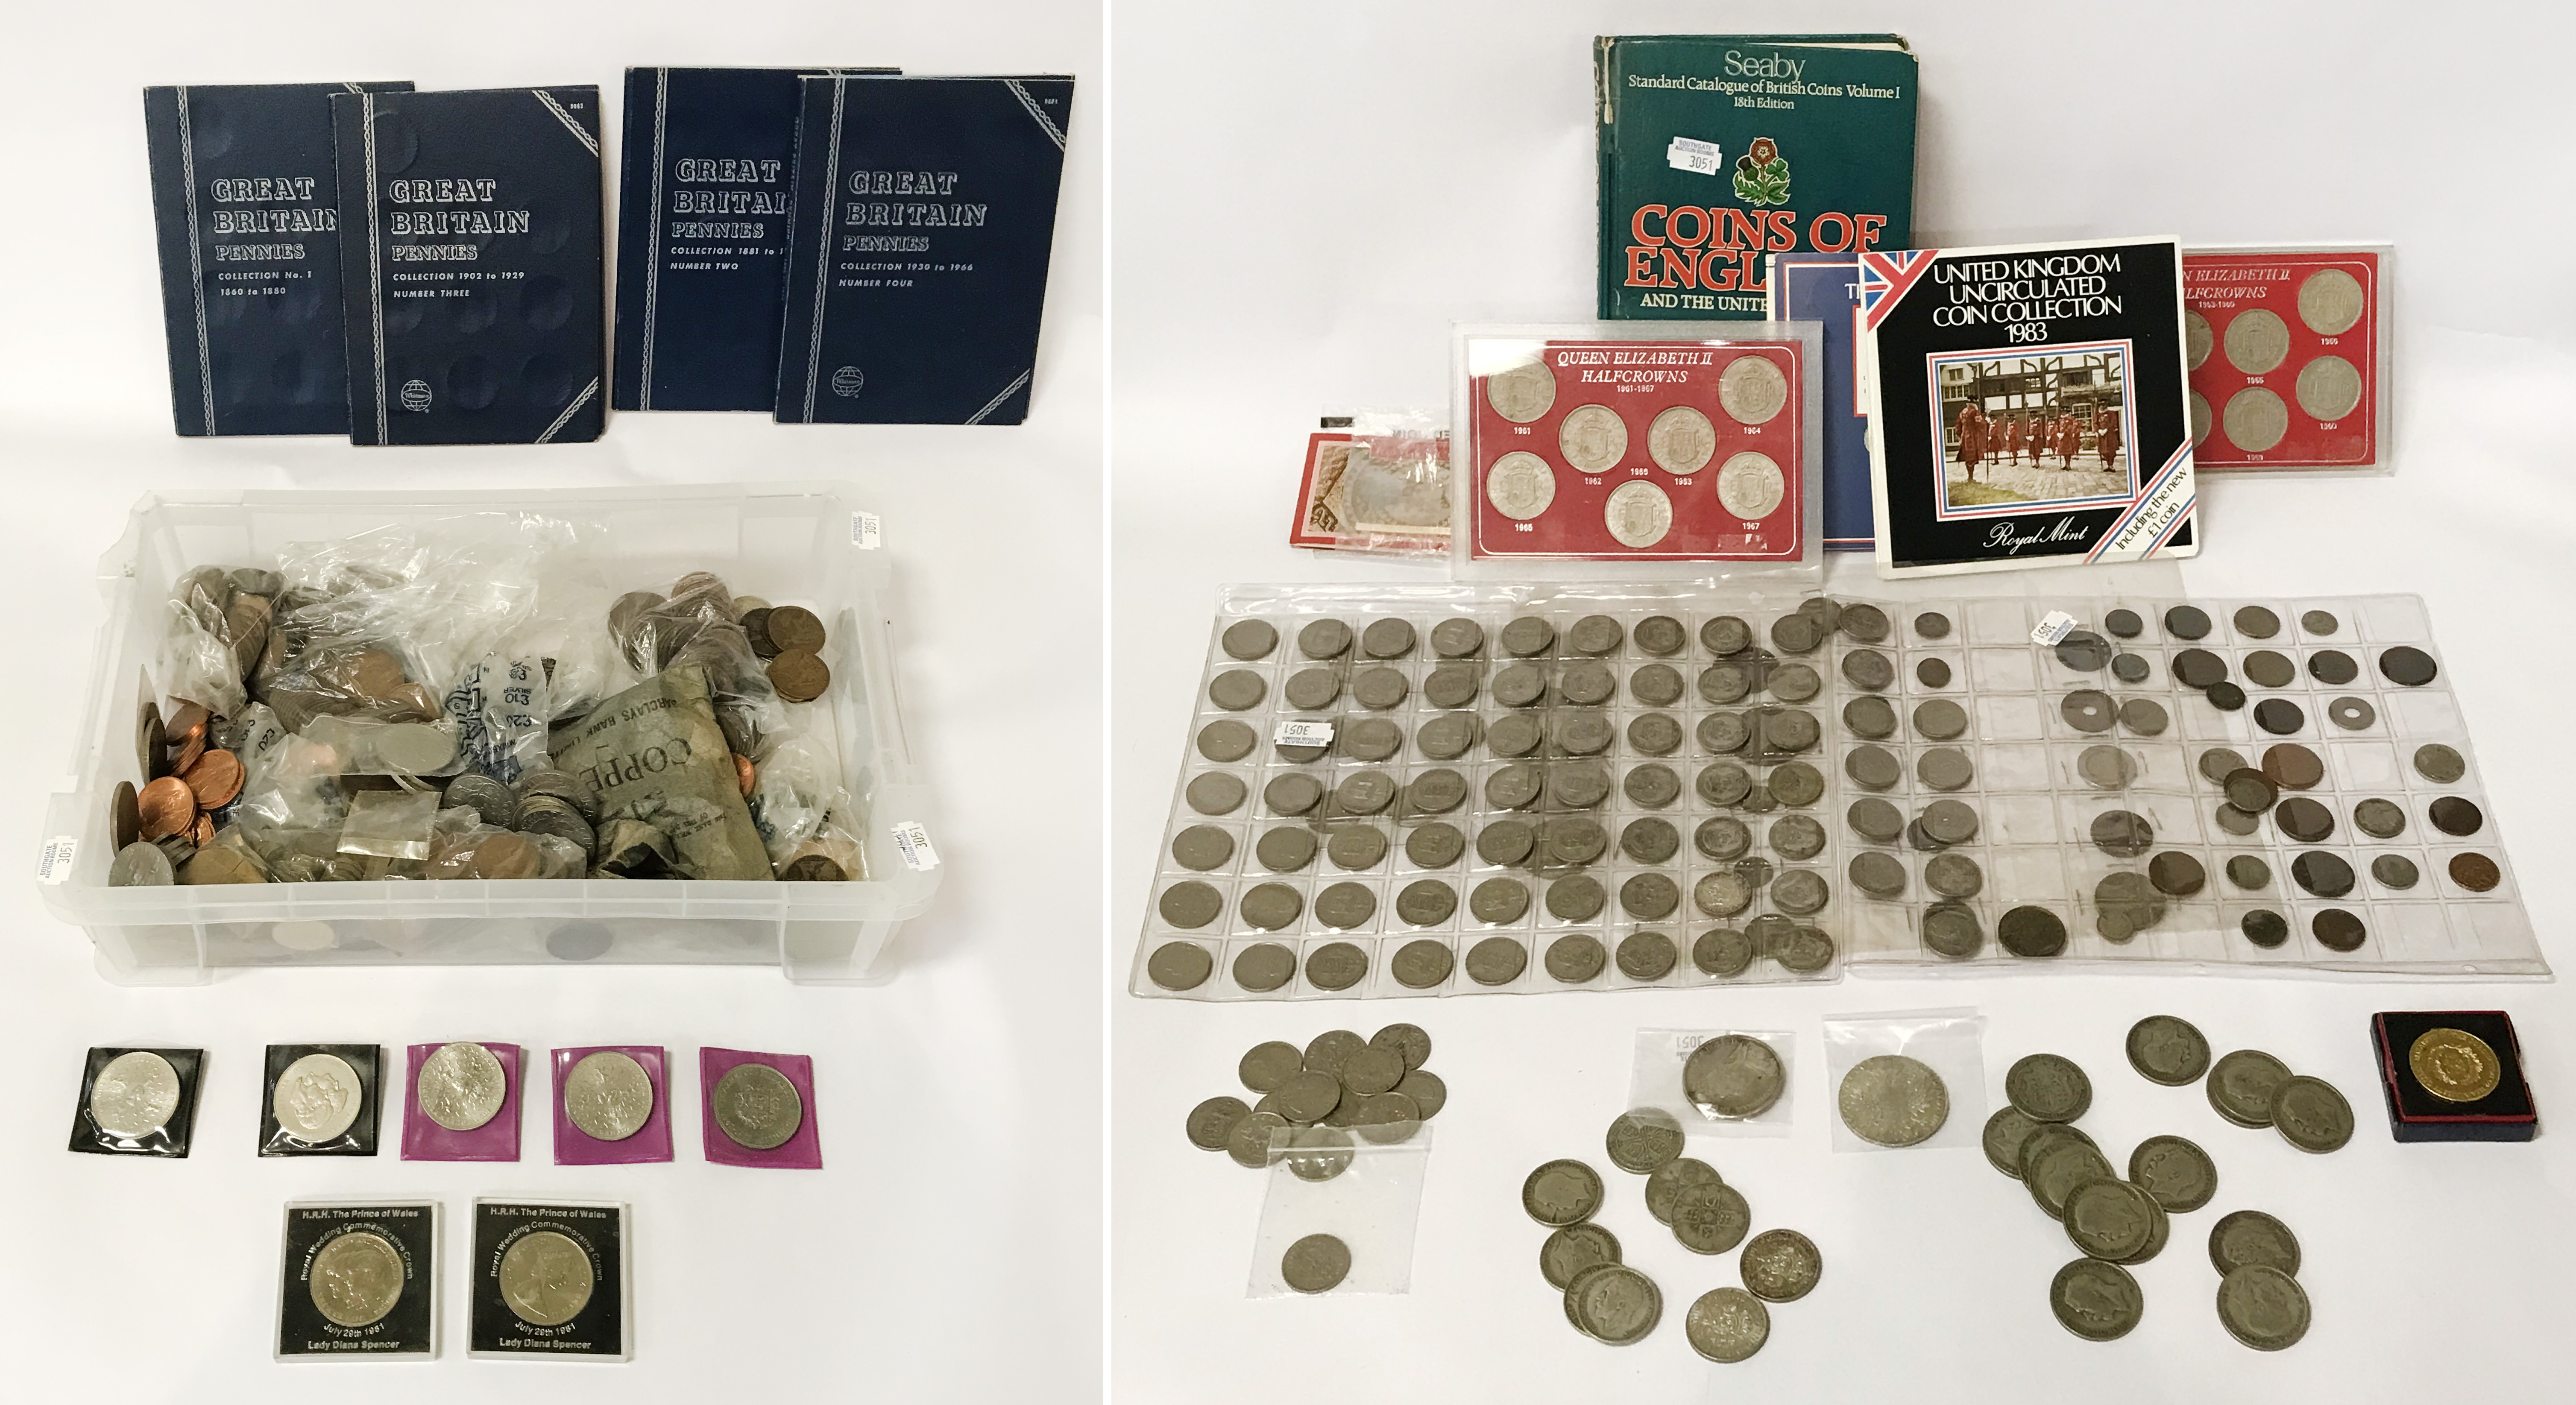 SELECTION OF VARIOUS COINS INCL. SILVER